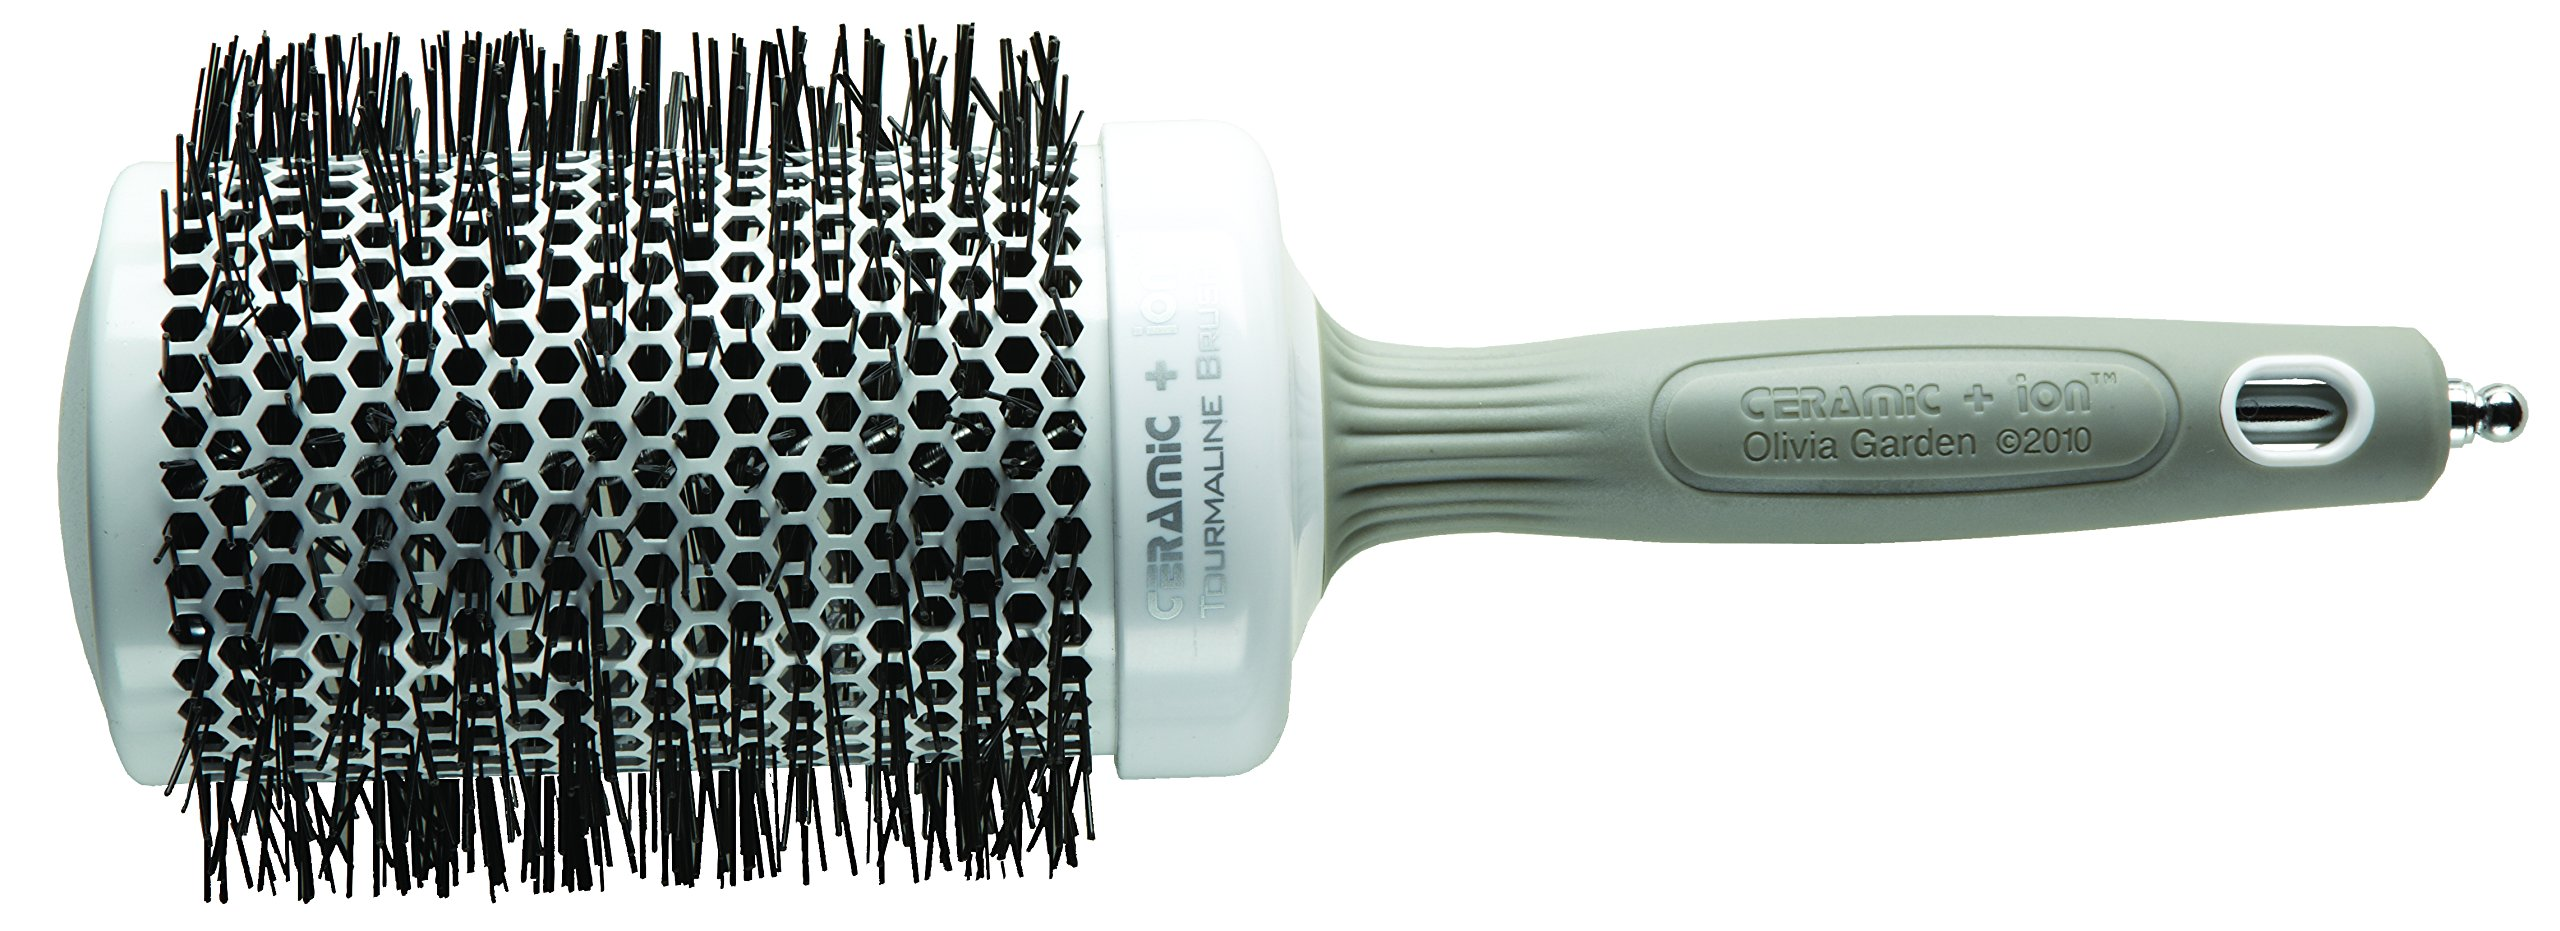 Olivia Garden Ceramic + Ion Thermal Round Hair Brush 65mm - Anti-Static, Tourmaline-Ion & Nylon Bristles